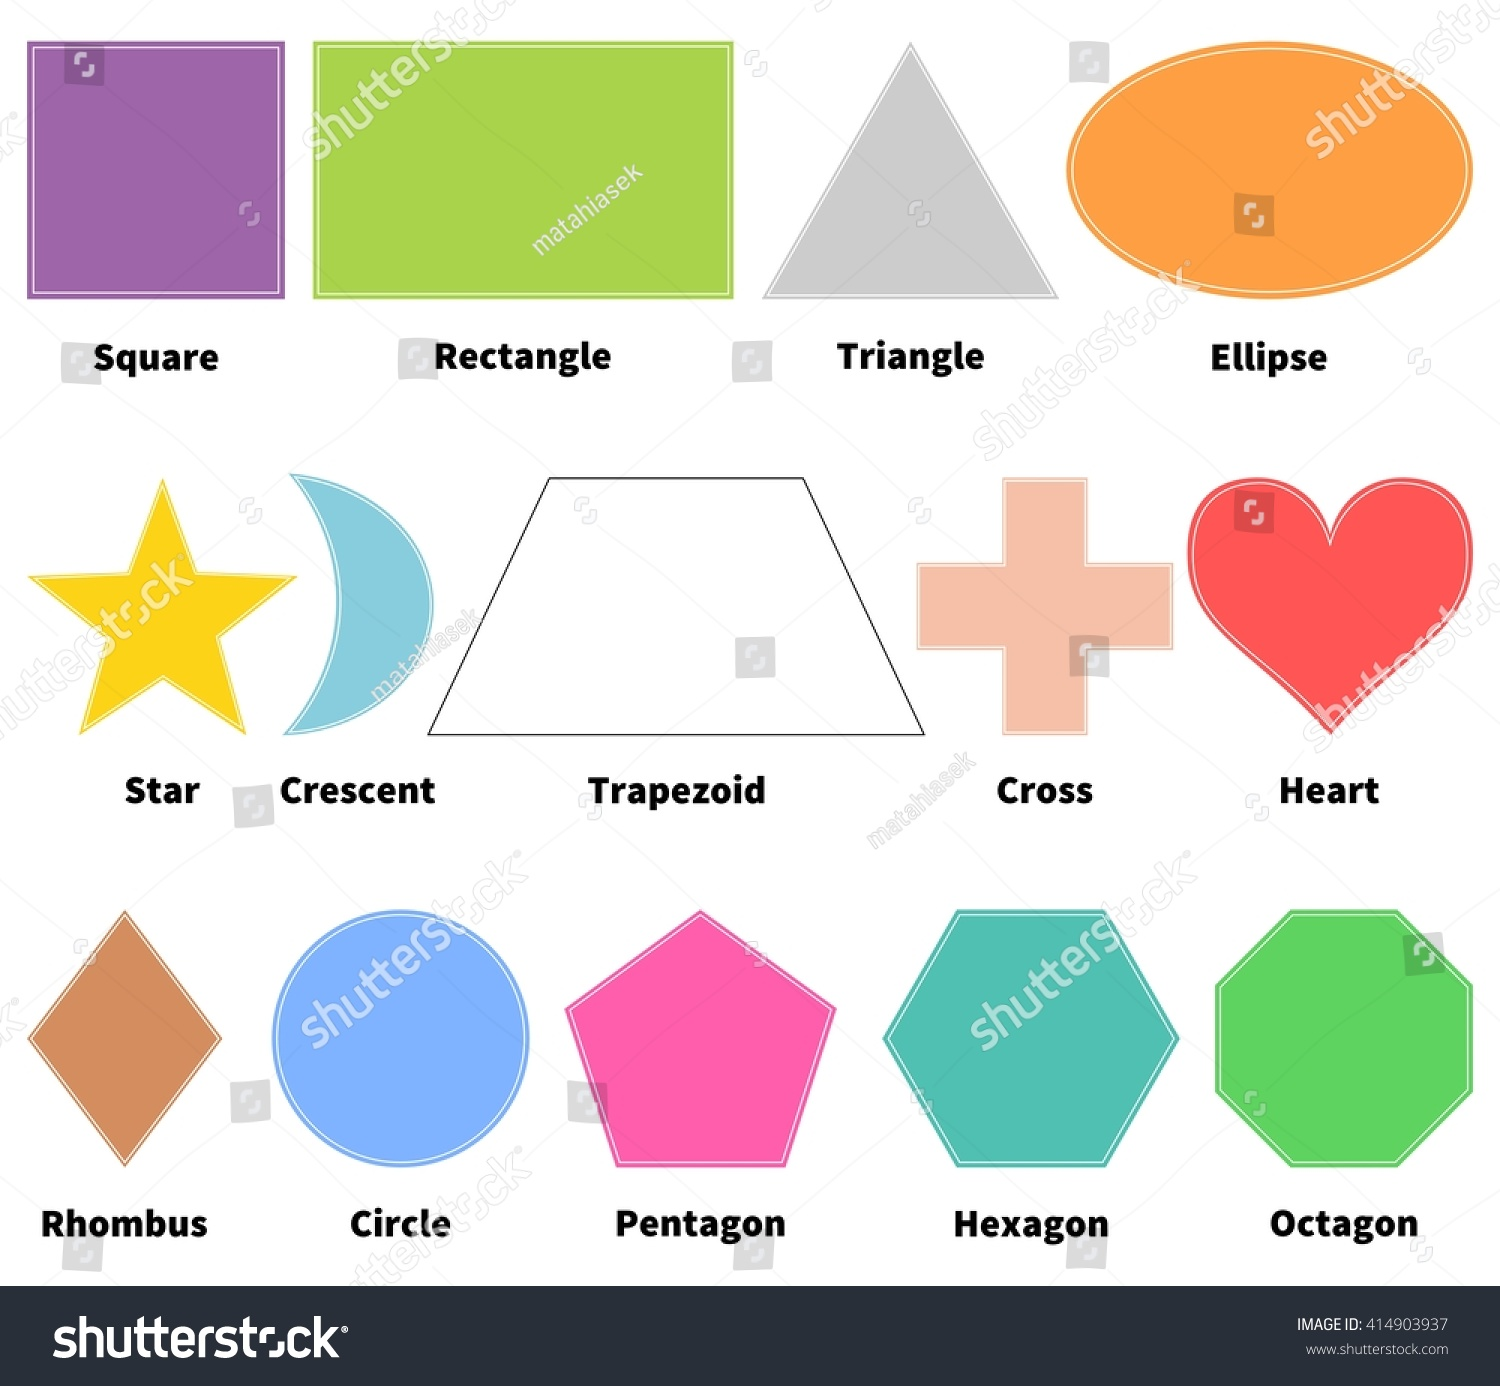 hight resolution of basic shapes for kids learn 2d shapes isolated on white background design elements